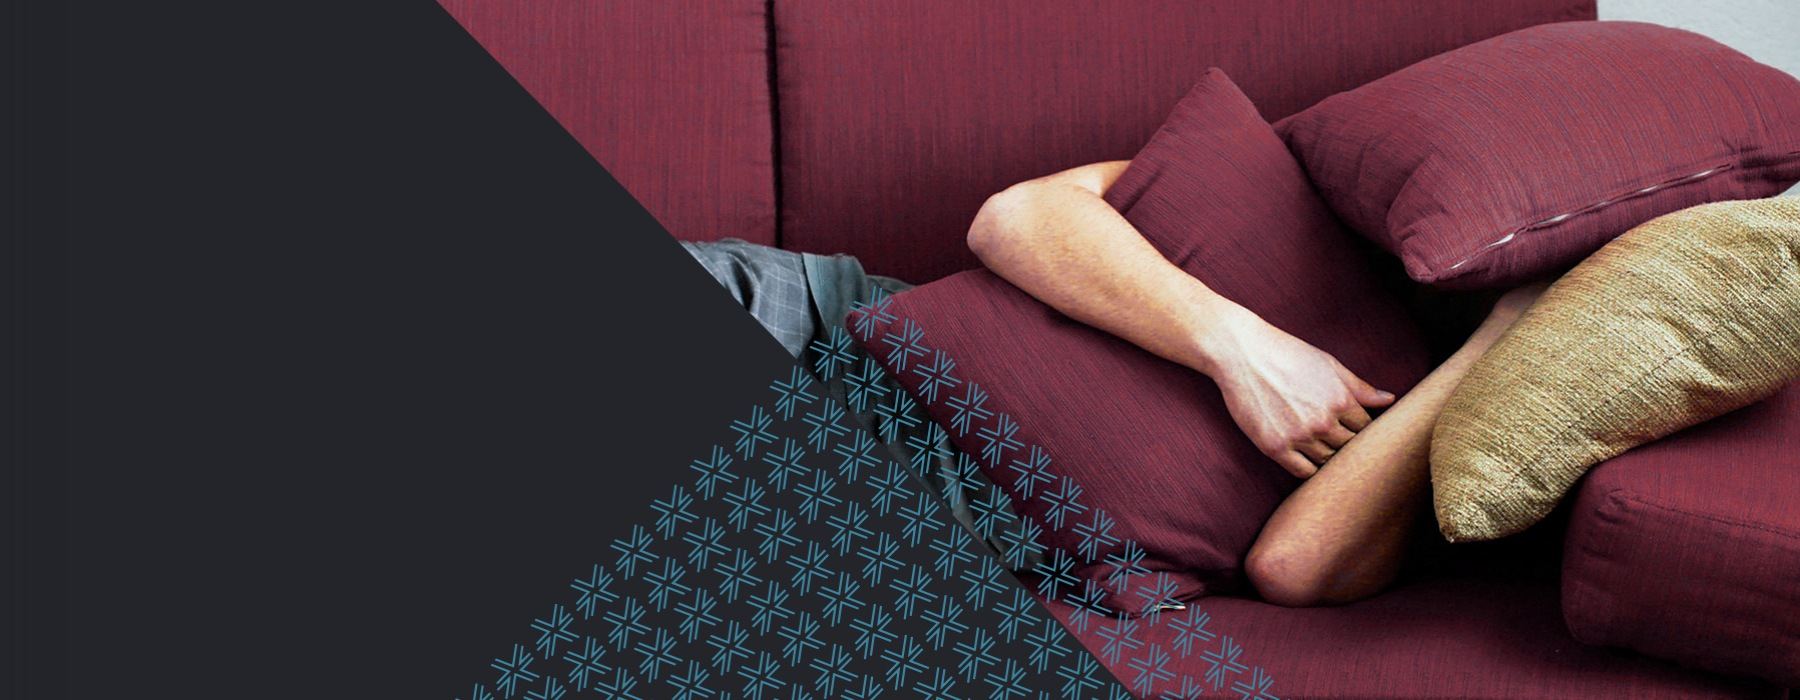 Person laying on the couch with a pillow covering face